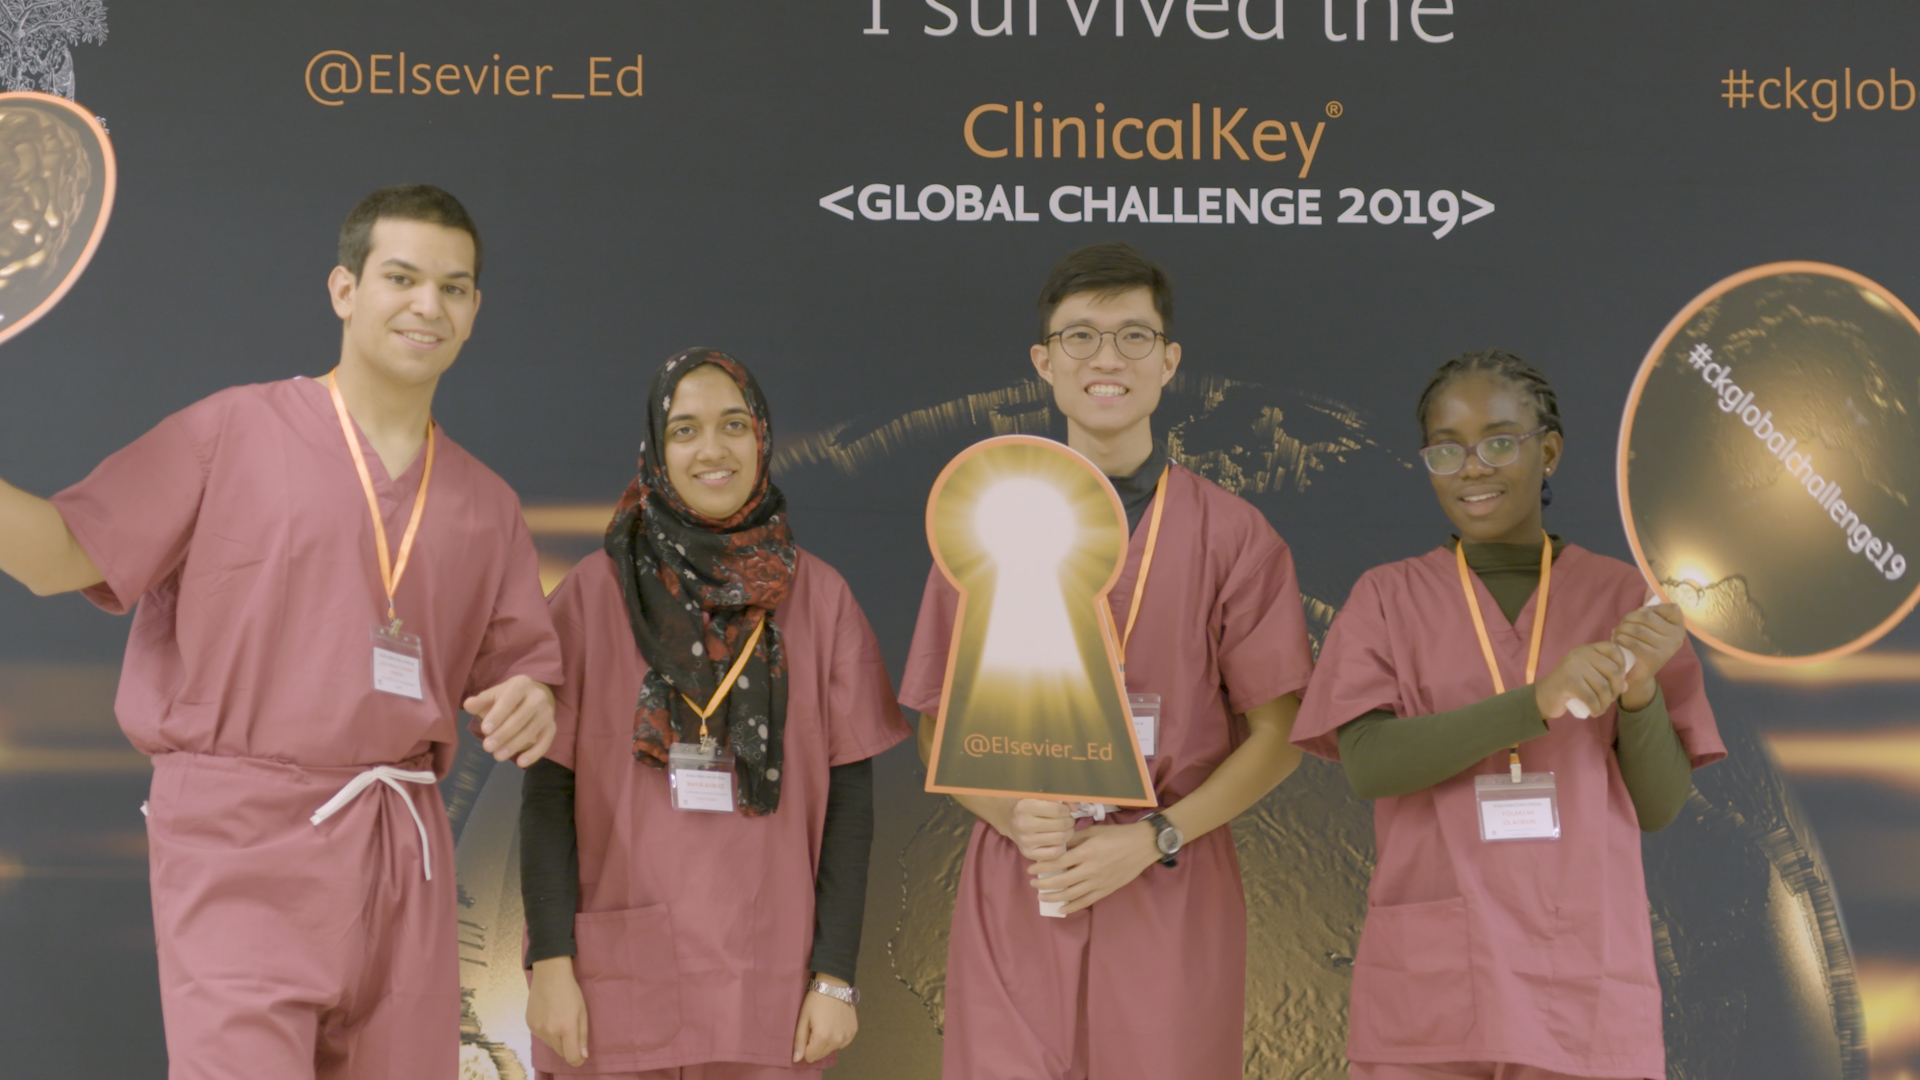 The ClinicalKey Global Challenge Winning Team